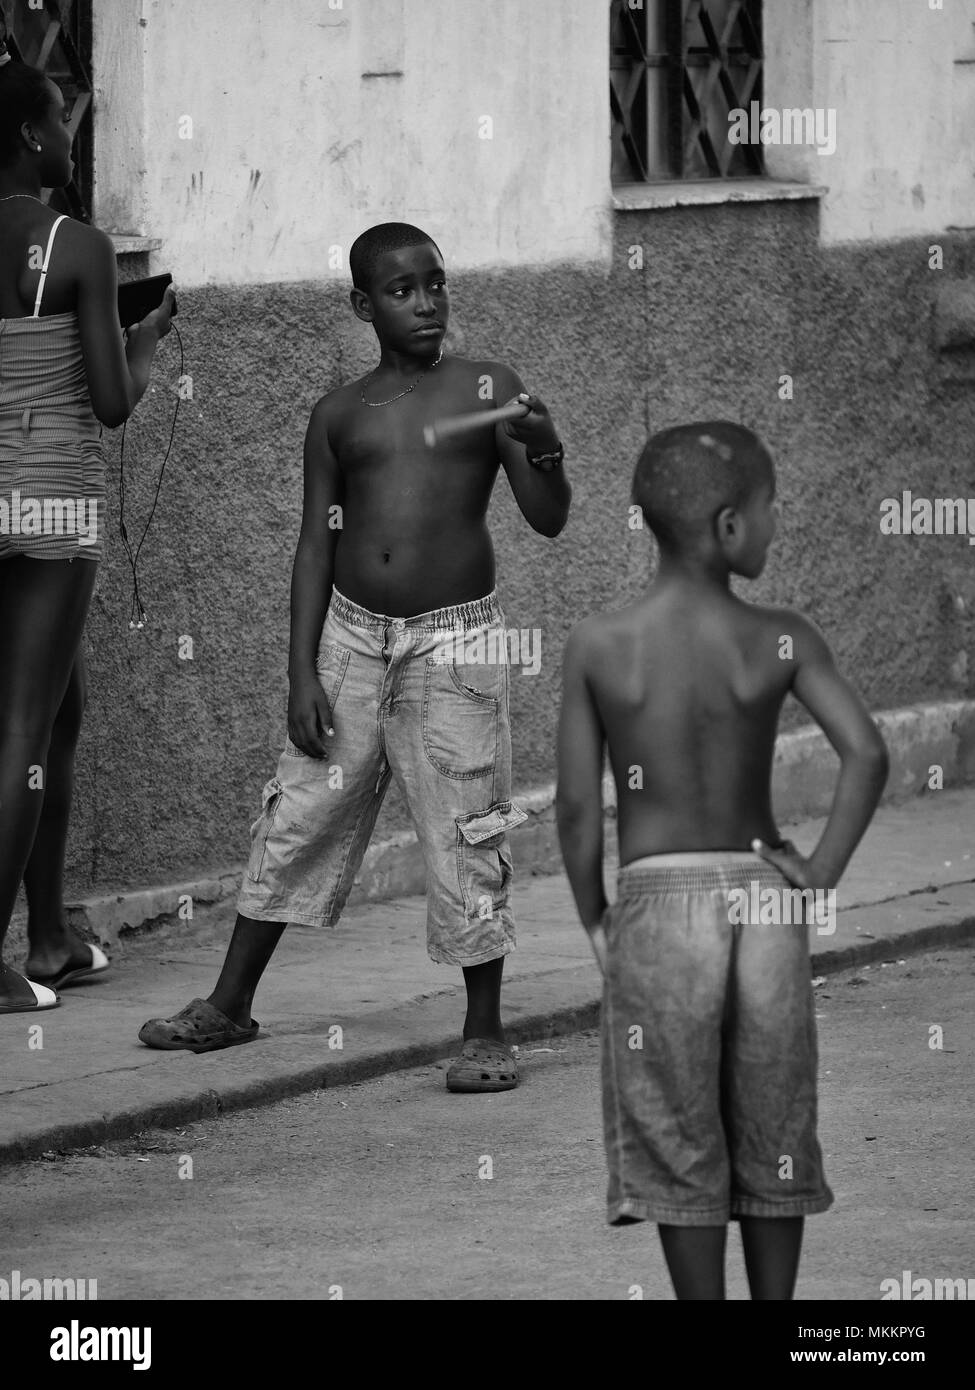 Black and white photograph of Afro Caribbean boys playing game of street baseball with improvised equipment, Havana, Cuba - Stock Image